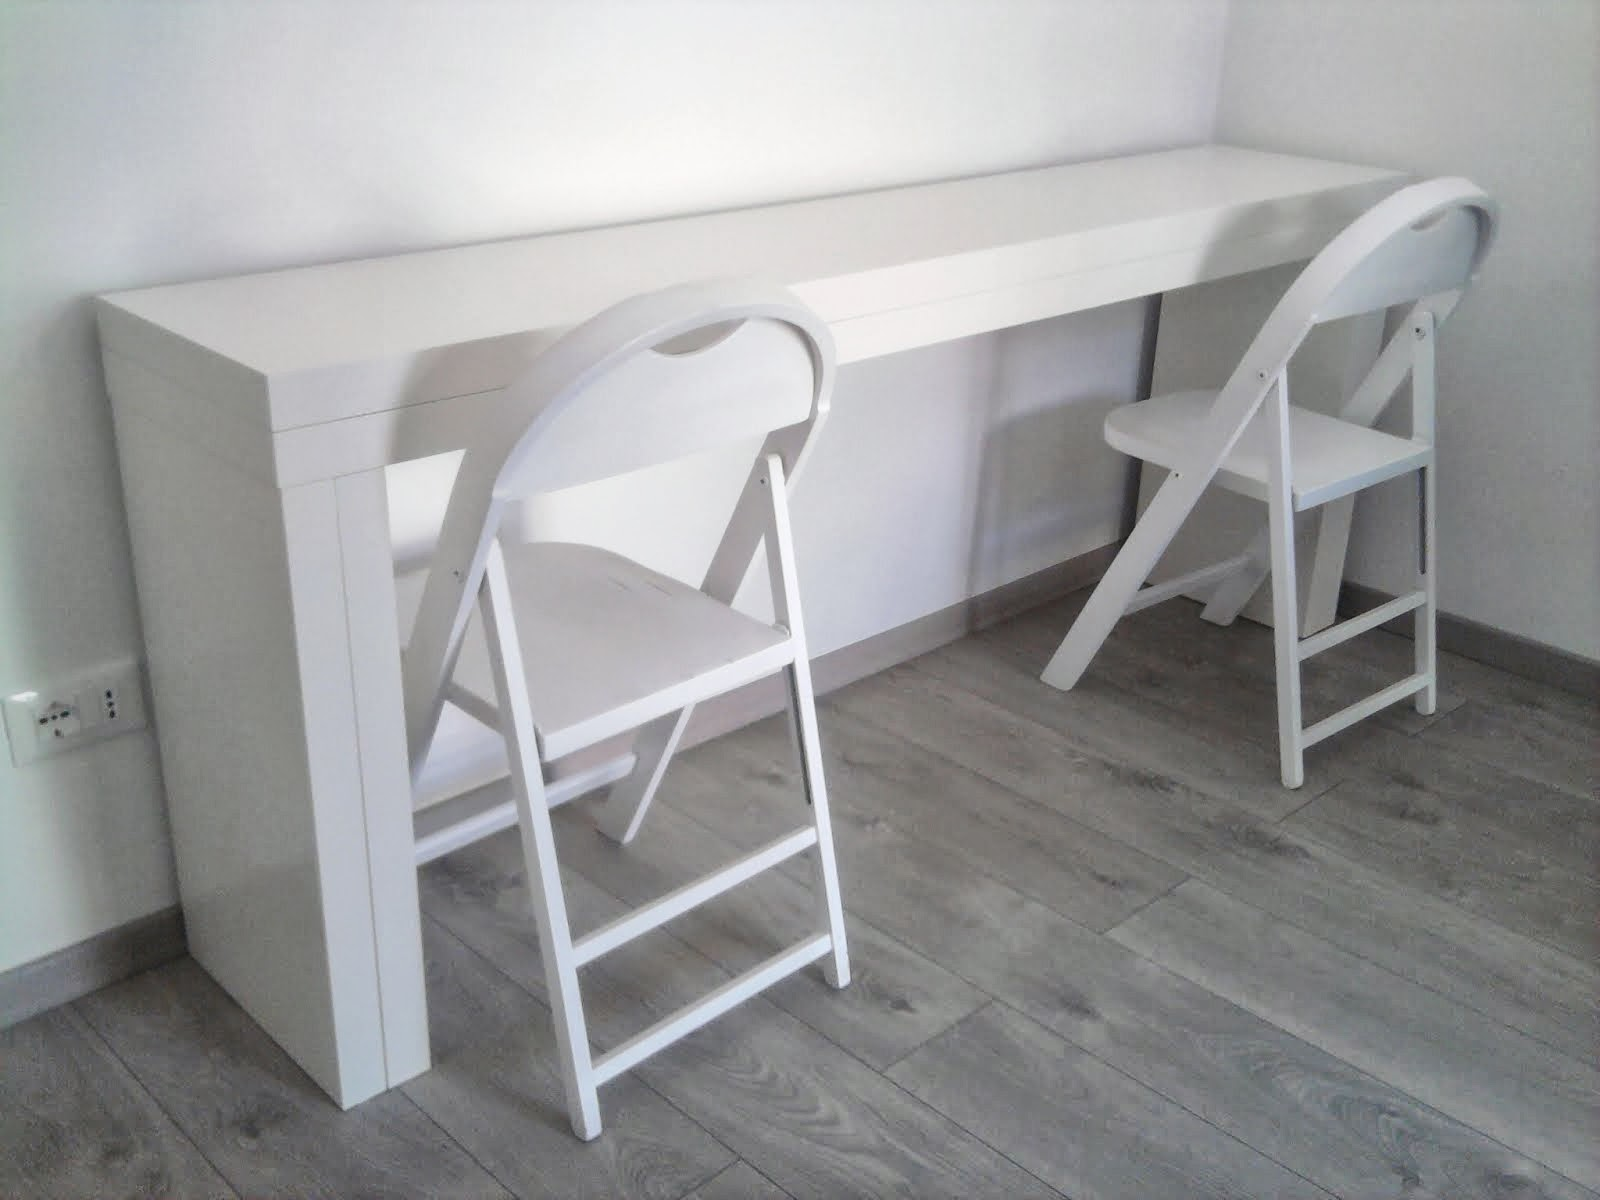 Double it malm console becomes a 10 people table ikea for Meuble 3 tiroir ikea